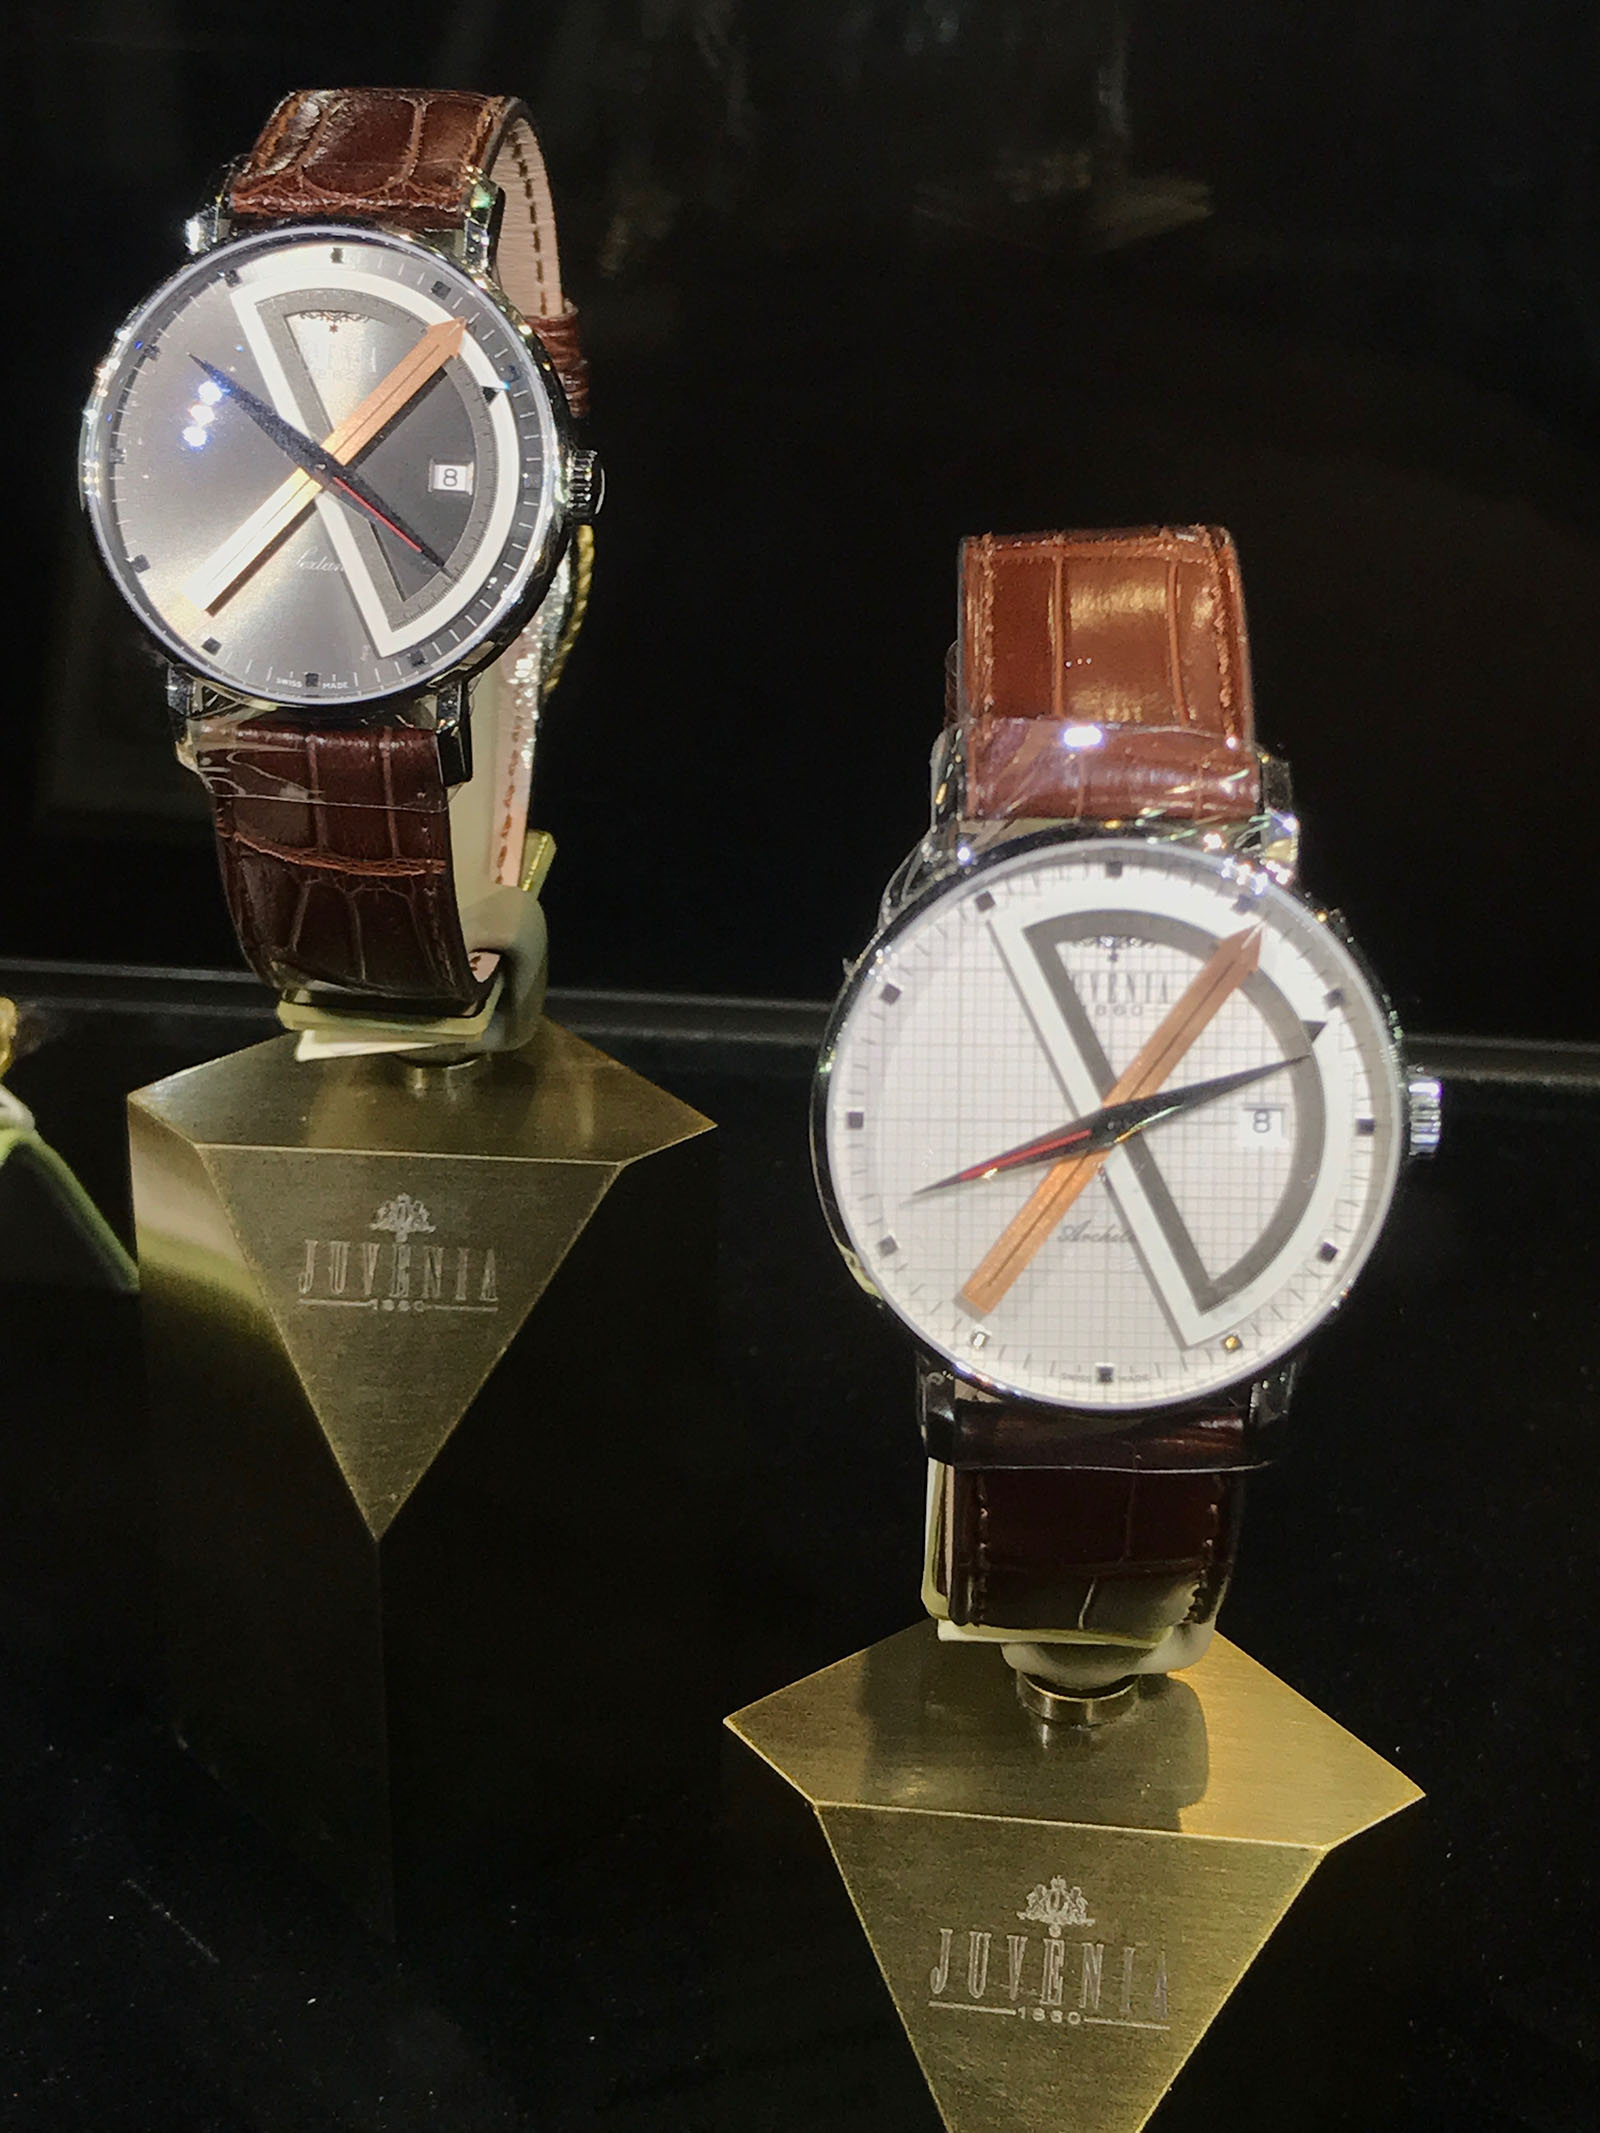 Hong Kong Watch & Clock Fair (HKWCF) 9